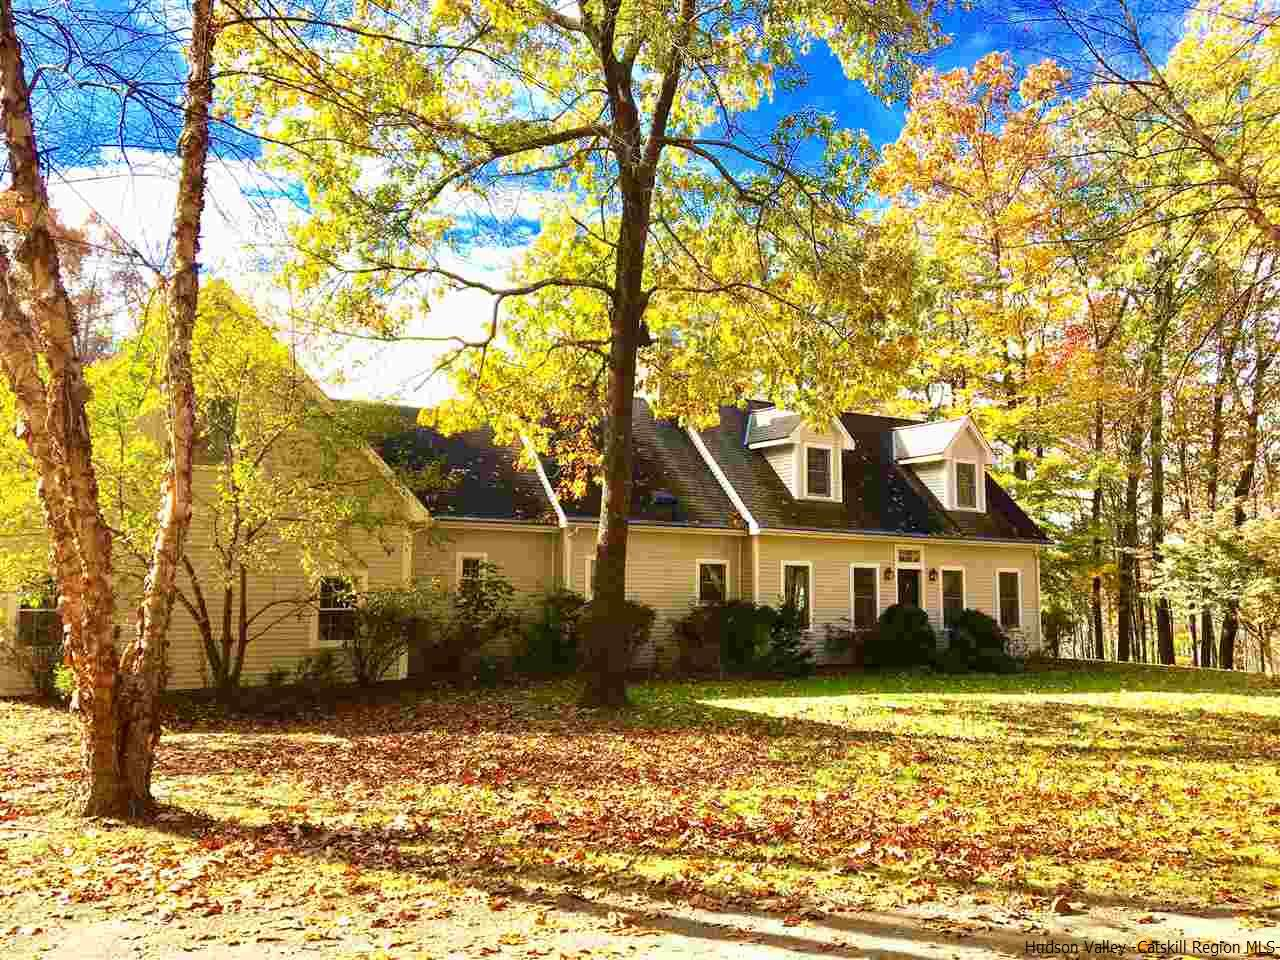 Single Family Home for Sale at 161 Boice Mill Road 161 Boice Mill Road Kerhonkson, New York 12446 United States